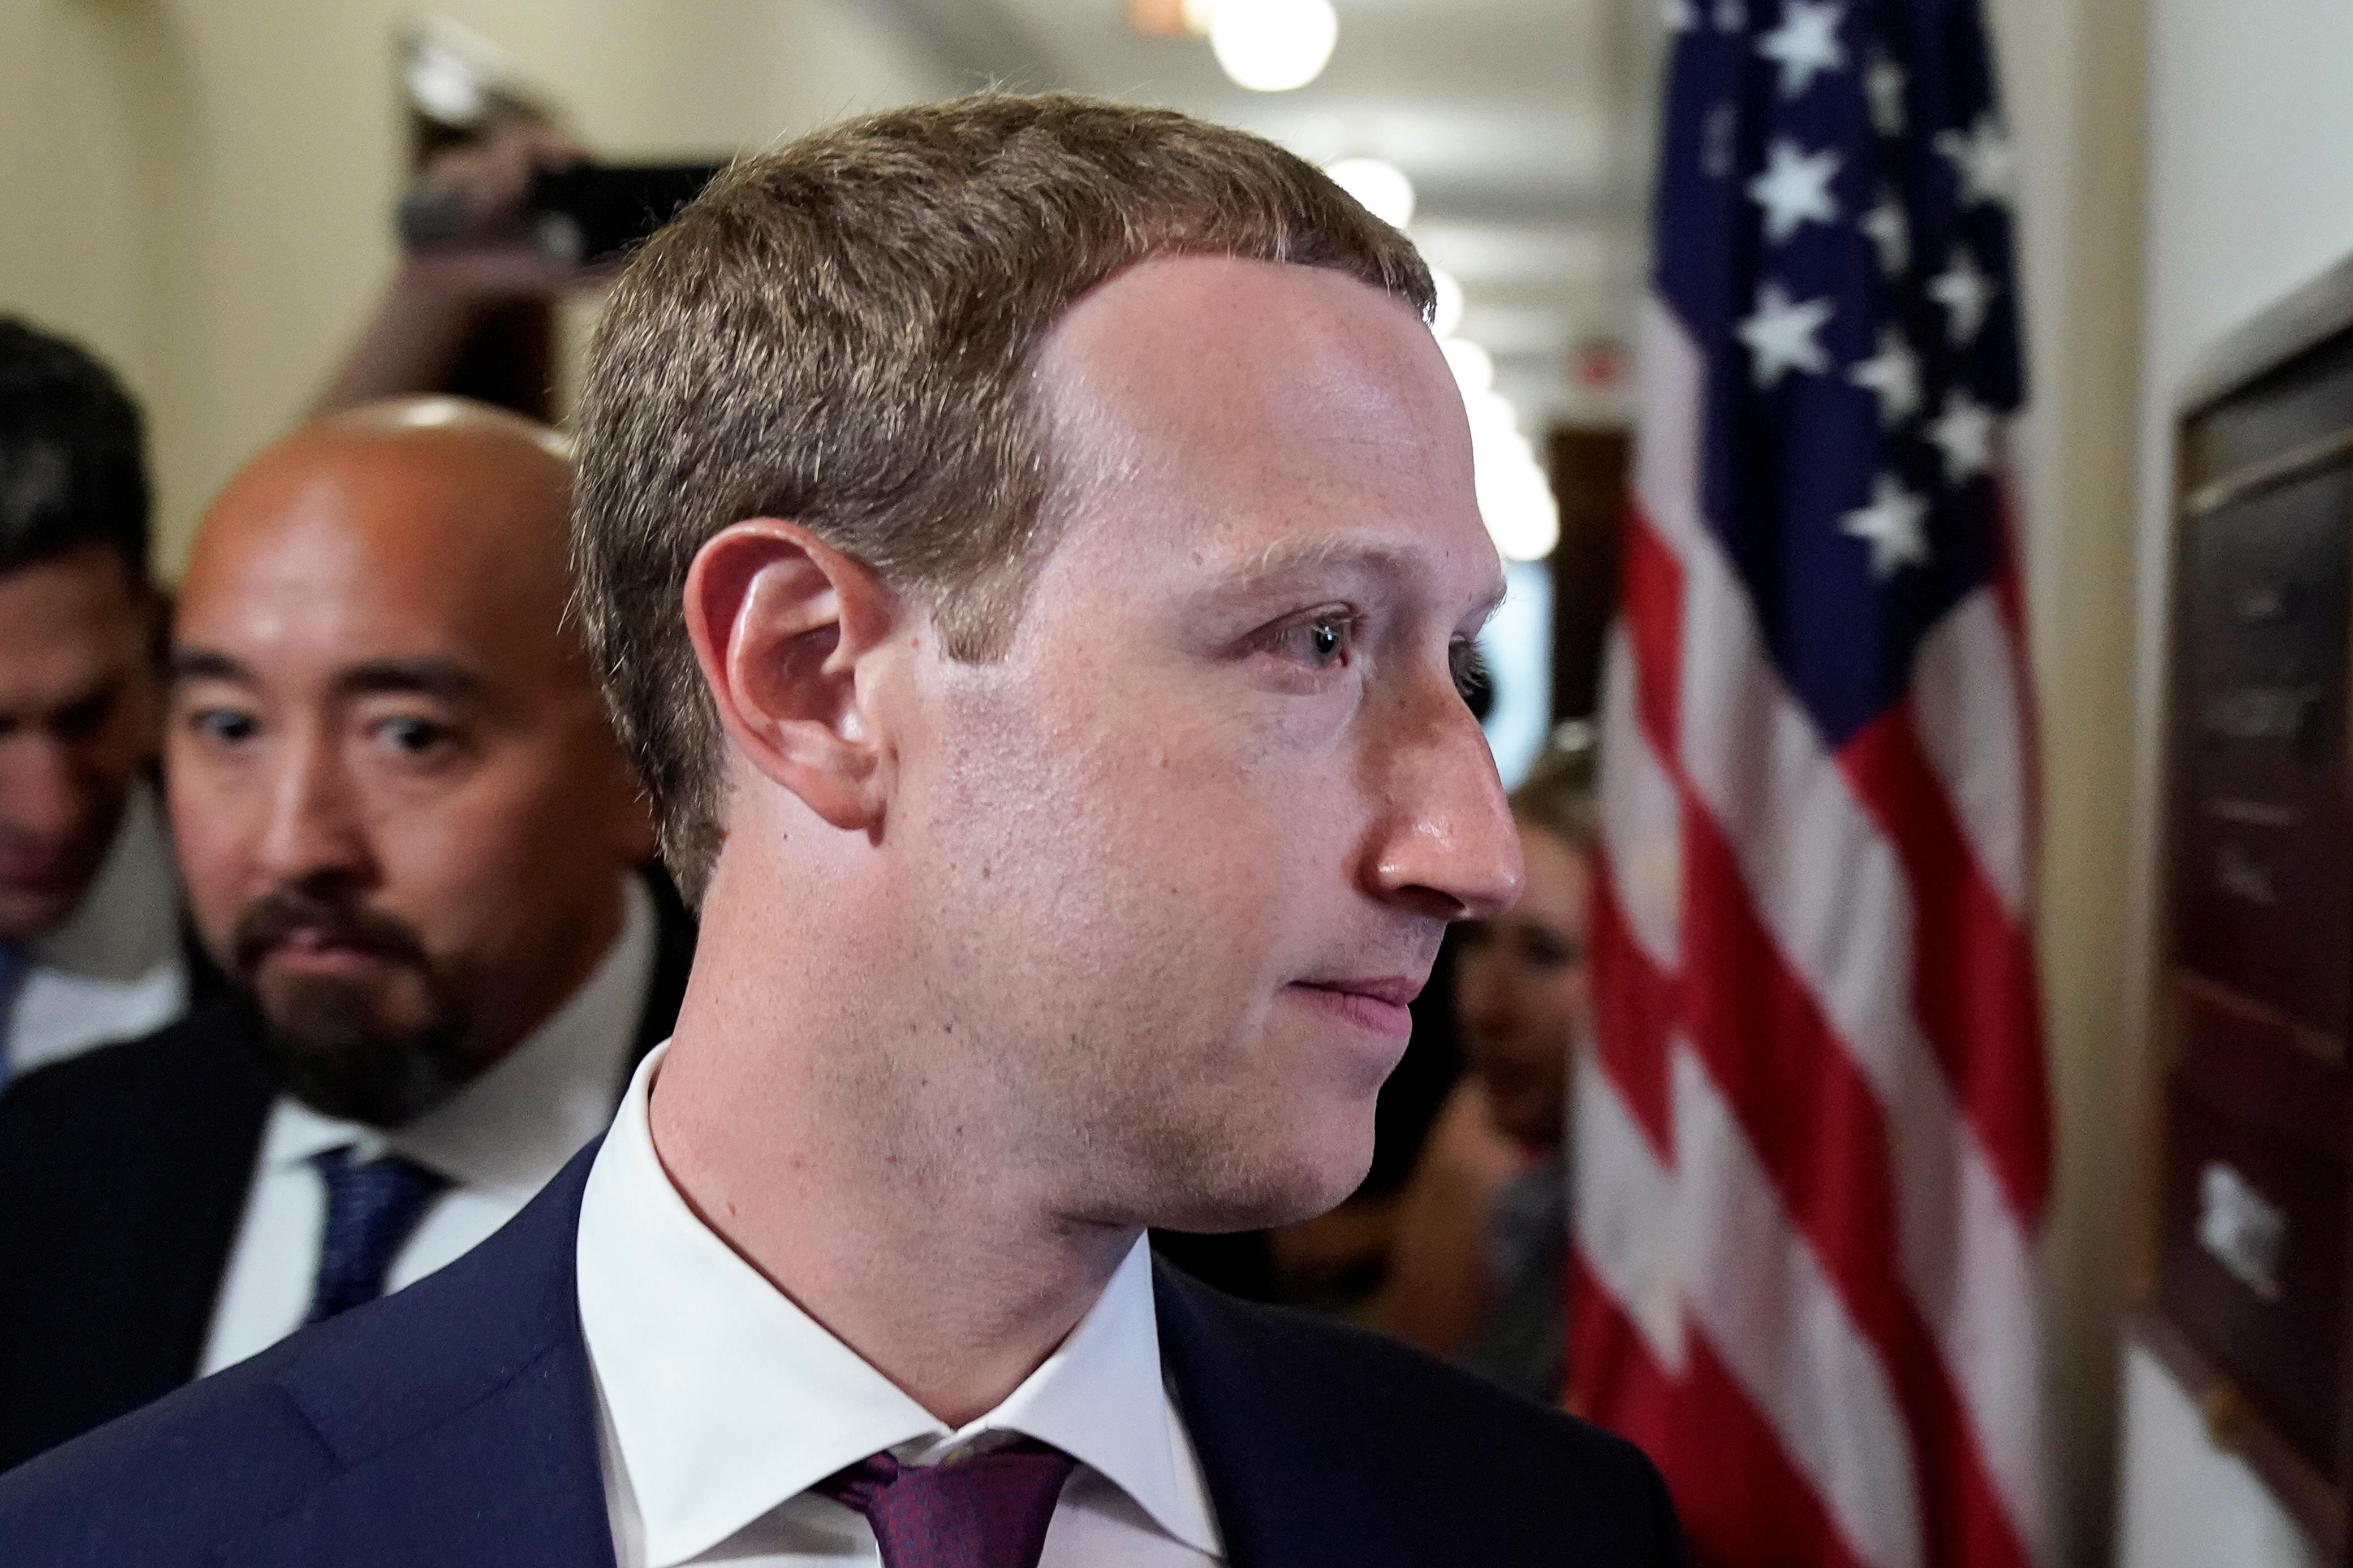 Facebook's Mark Zuckerberg to testify in Congress on the cryptocurrency Libra